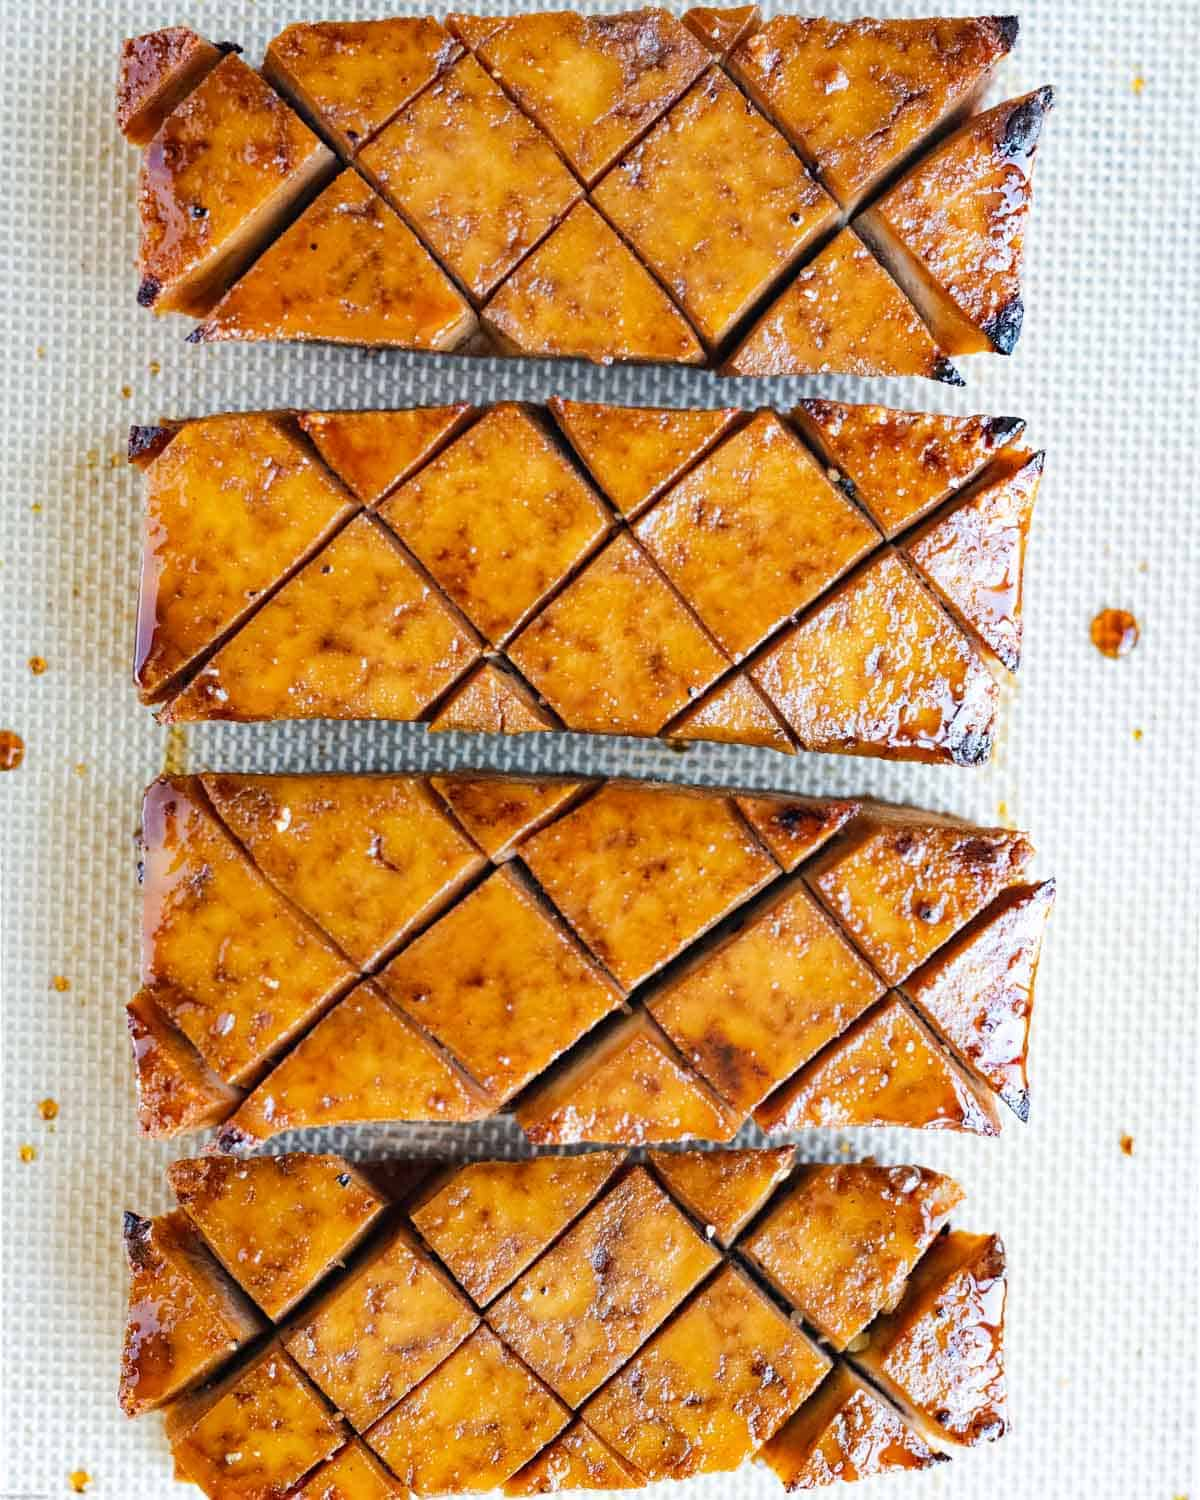 Golden baked tofu steaks in soy sauce and maple syrup marinade.